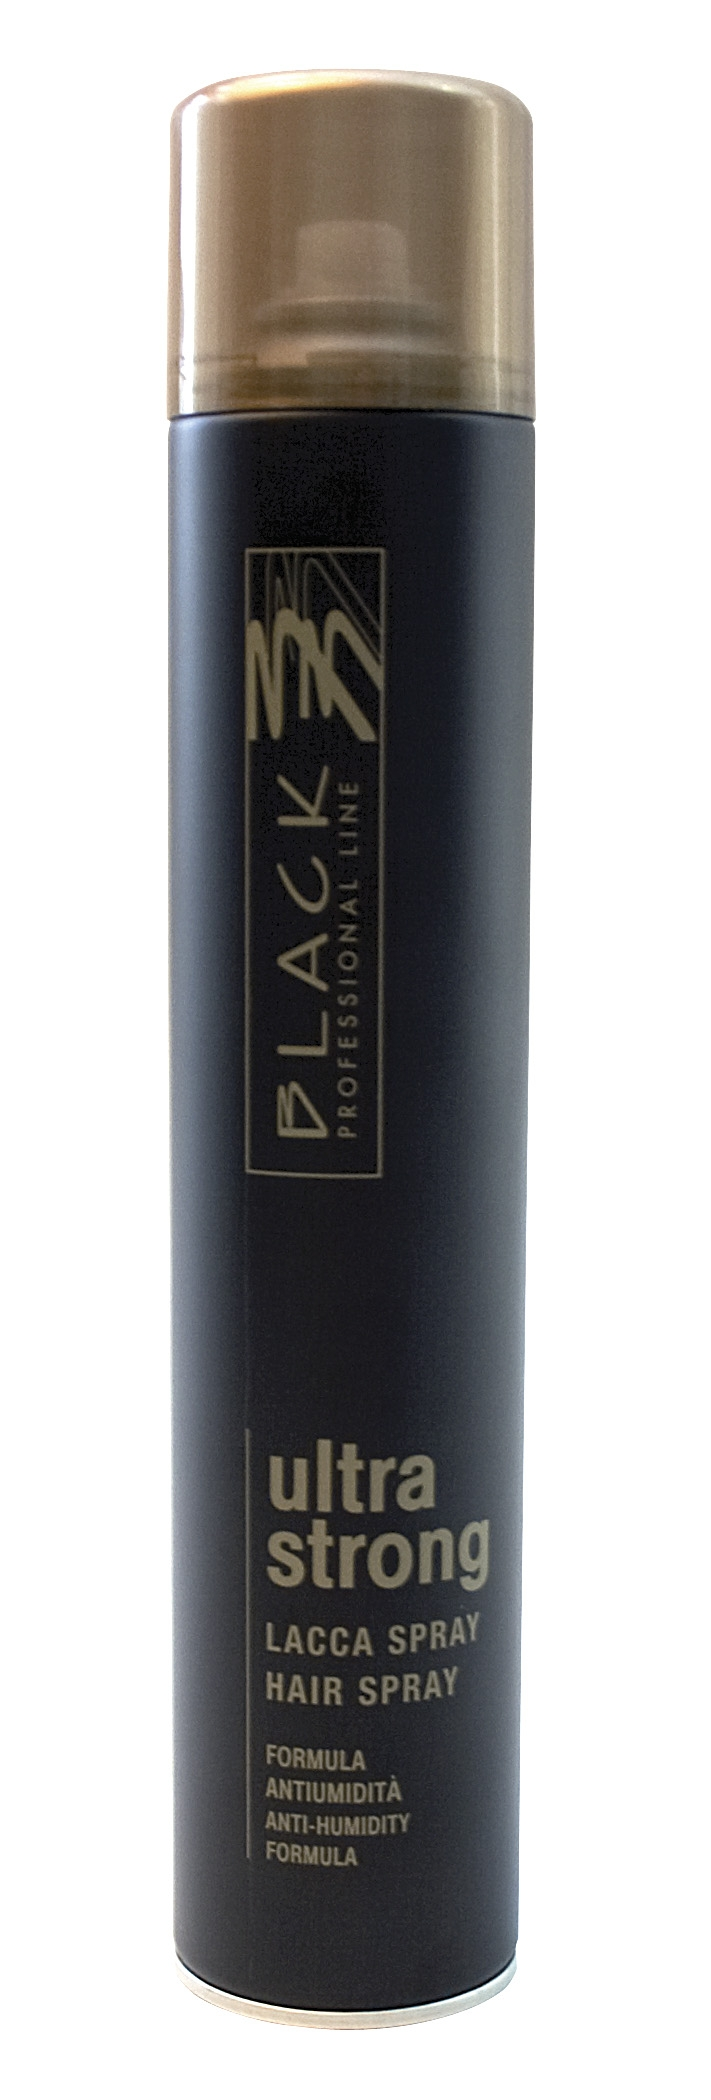 Black Ultra Strong Hair Spray 500ml - lak na vlasy